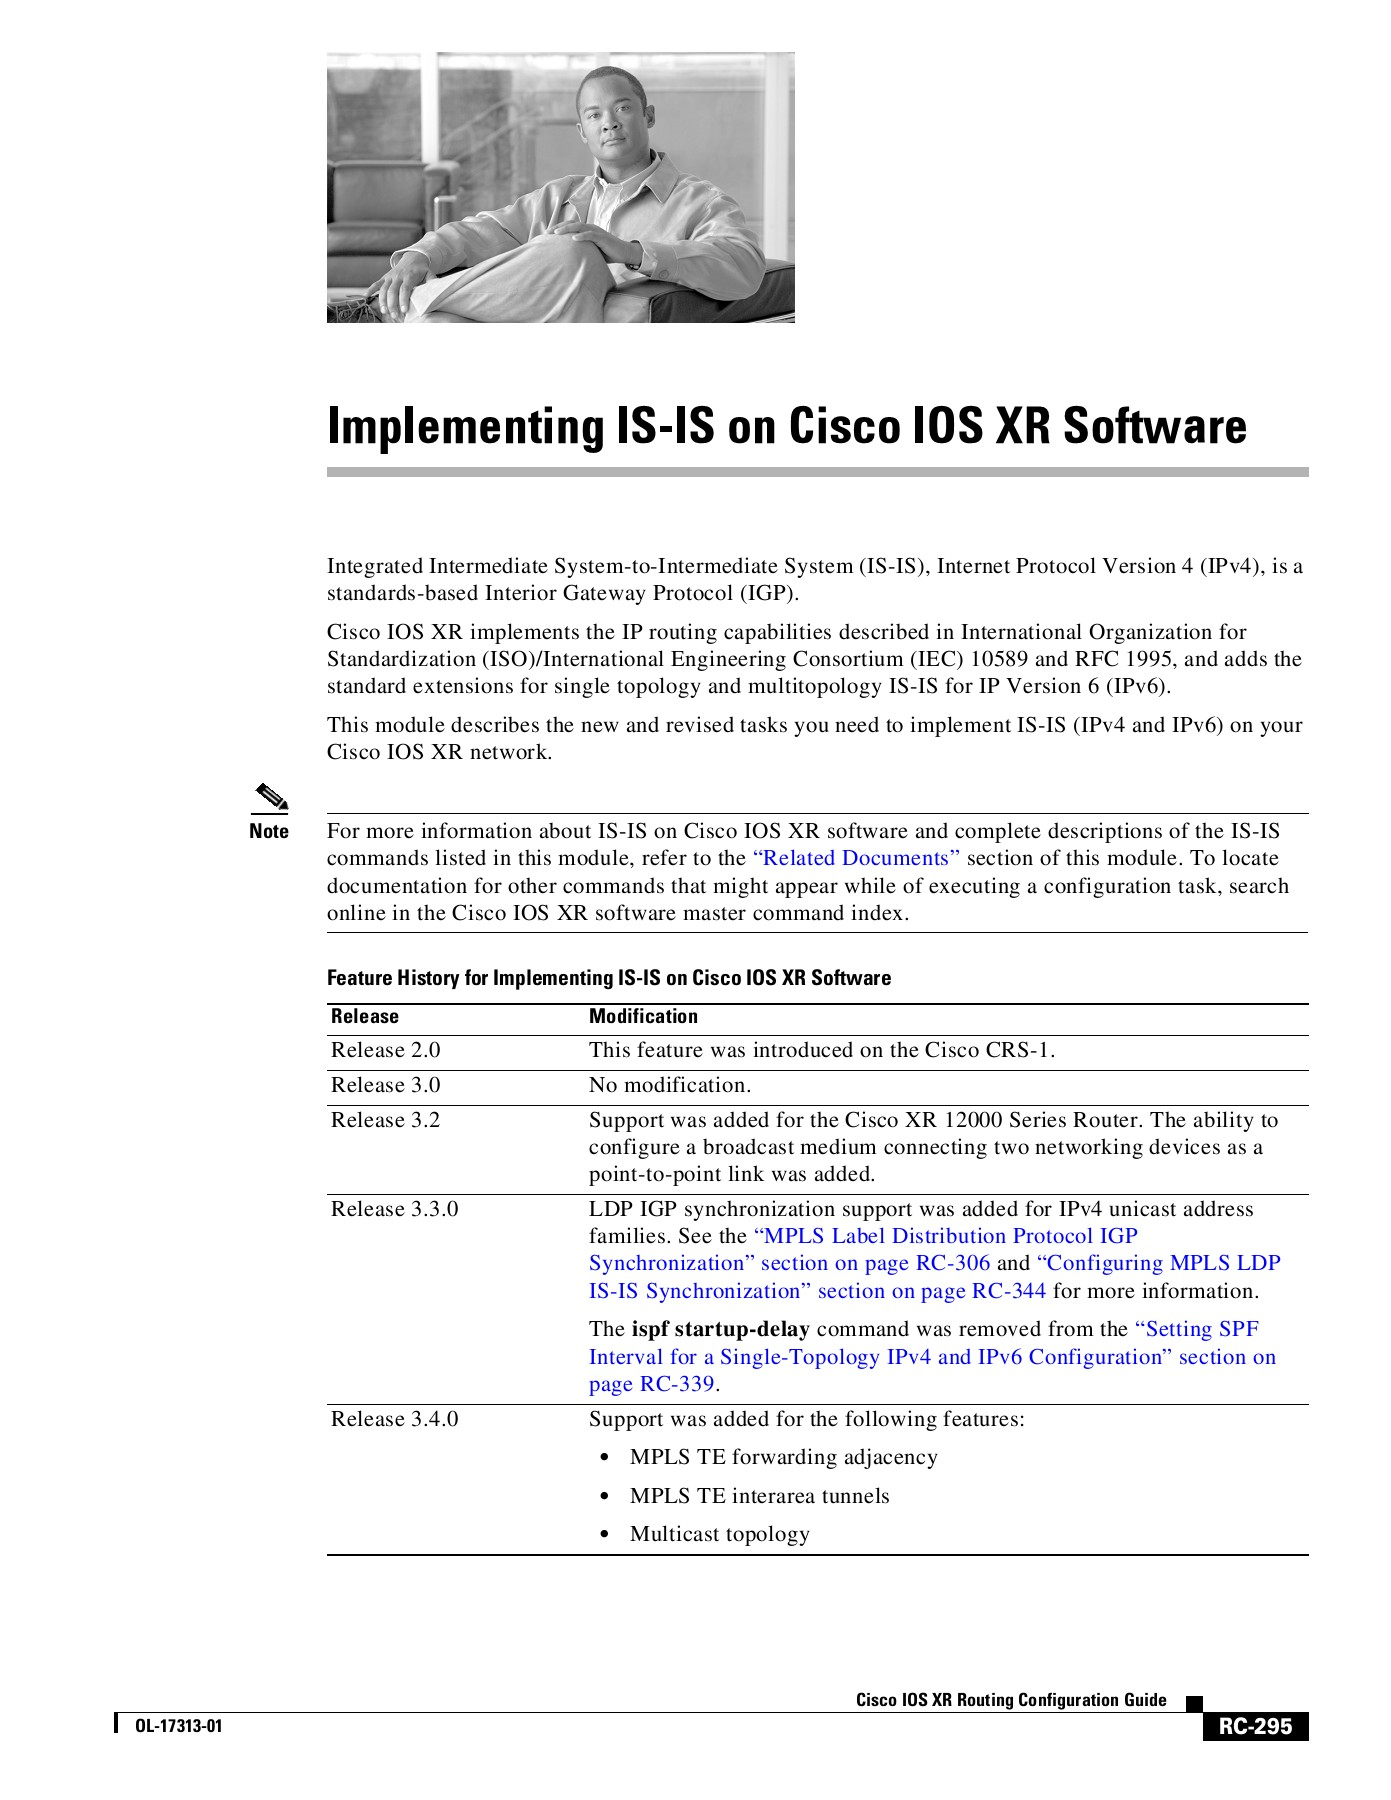 Implementing IS-IS on Cisco IOS XR Software Pages 51 - 64